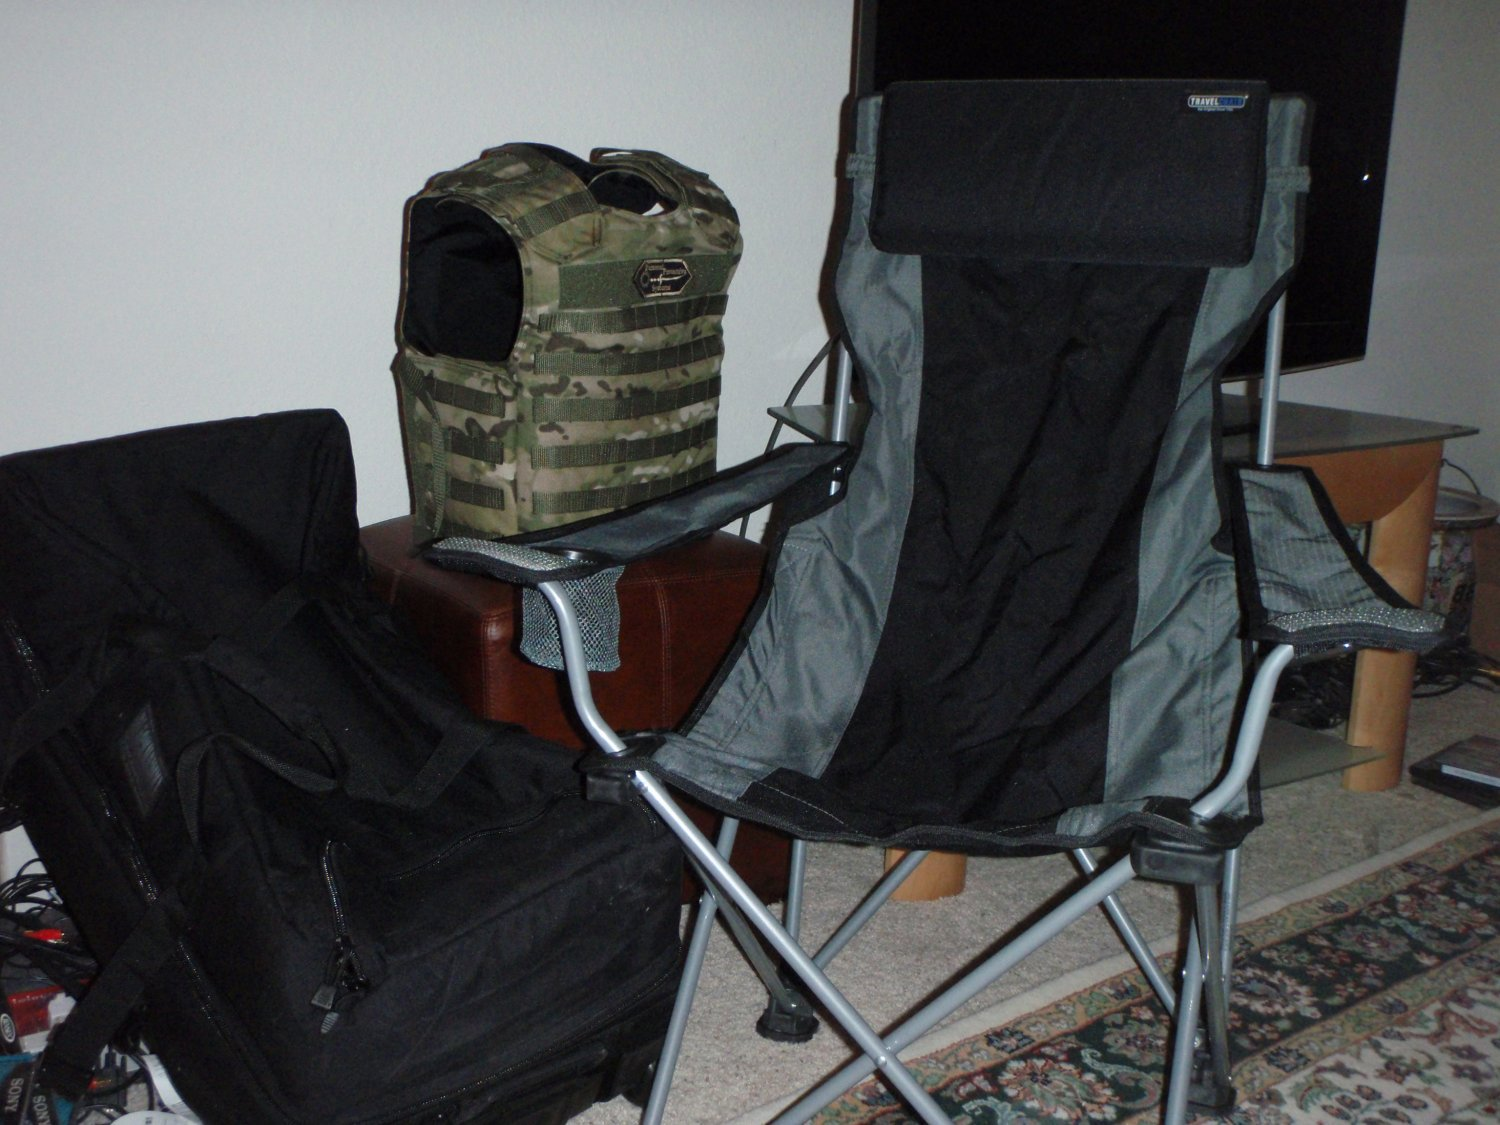 TravelChair 4 <!  :en  >TravelChair Portable Folding Lounge Chairs for Tactical Travel Applications<!  :  >